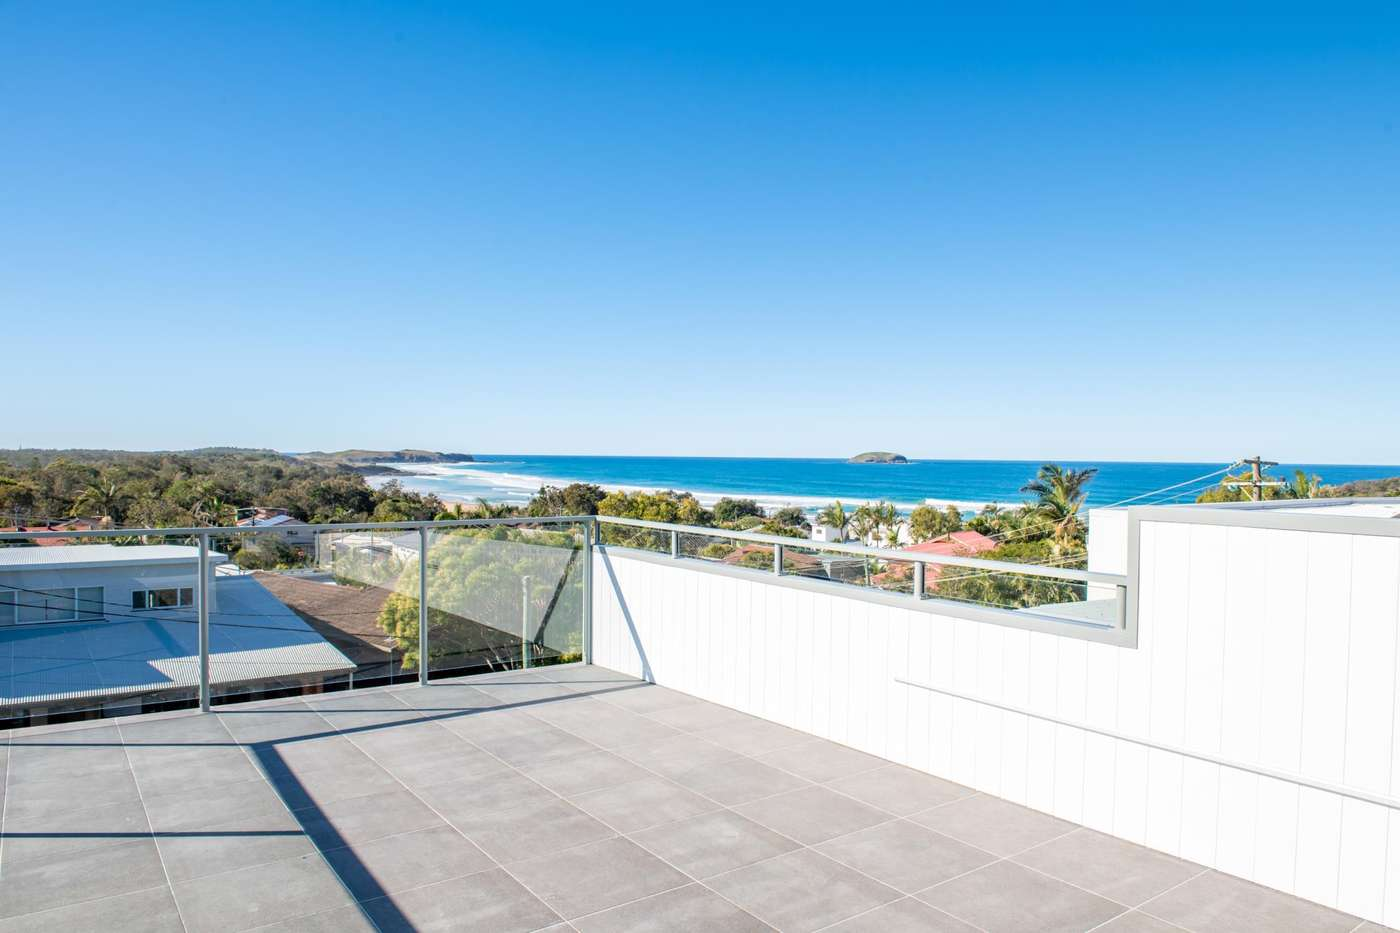 Main view of Homely house listing, 26 Ocean View Crescent, Emerald Beach, NSW 2456